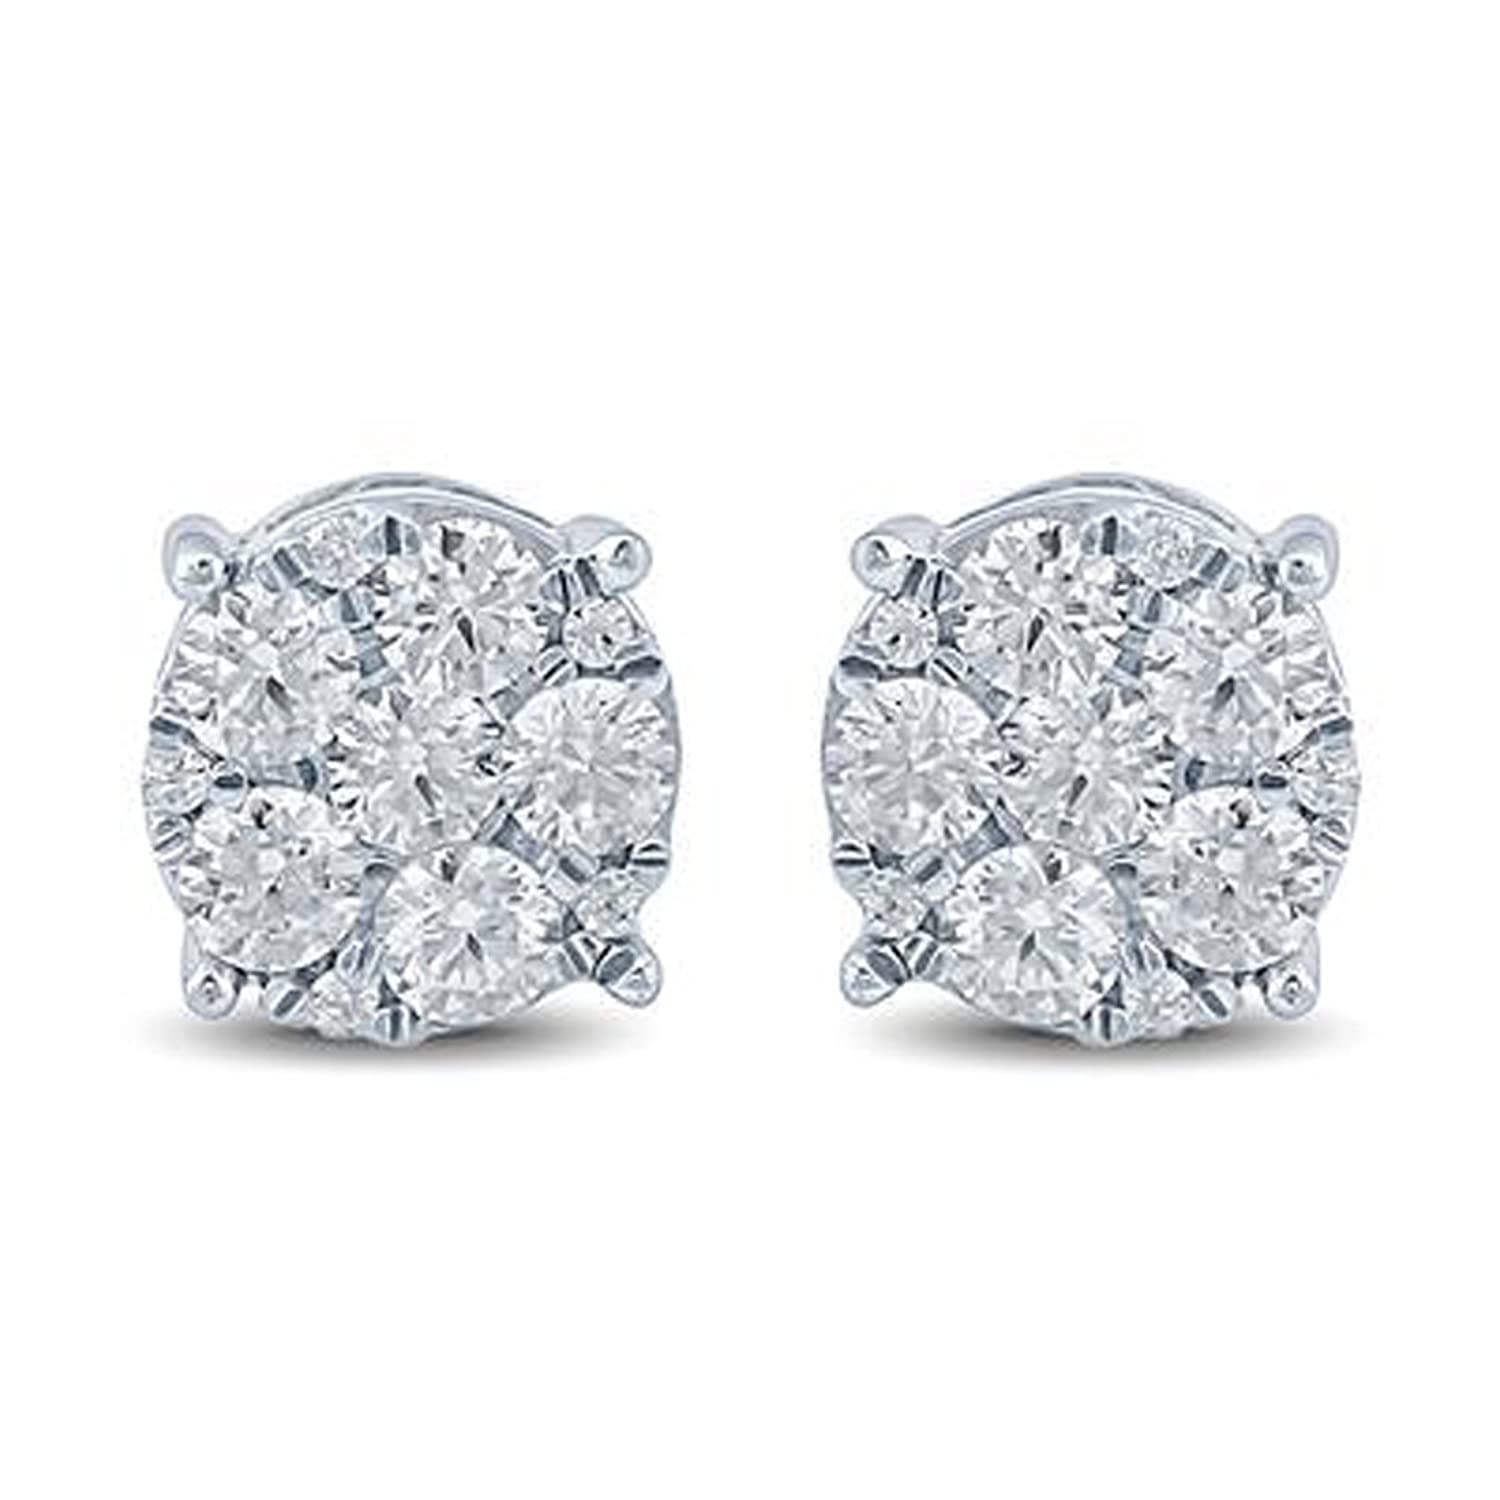 2heart 3/4 Carat TW Round Cut D/VVS1 Diamond Cluster Earrings 14K White Gold Plated